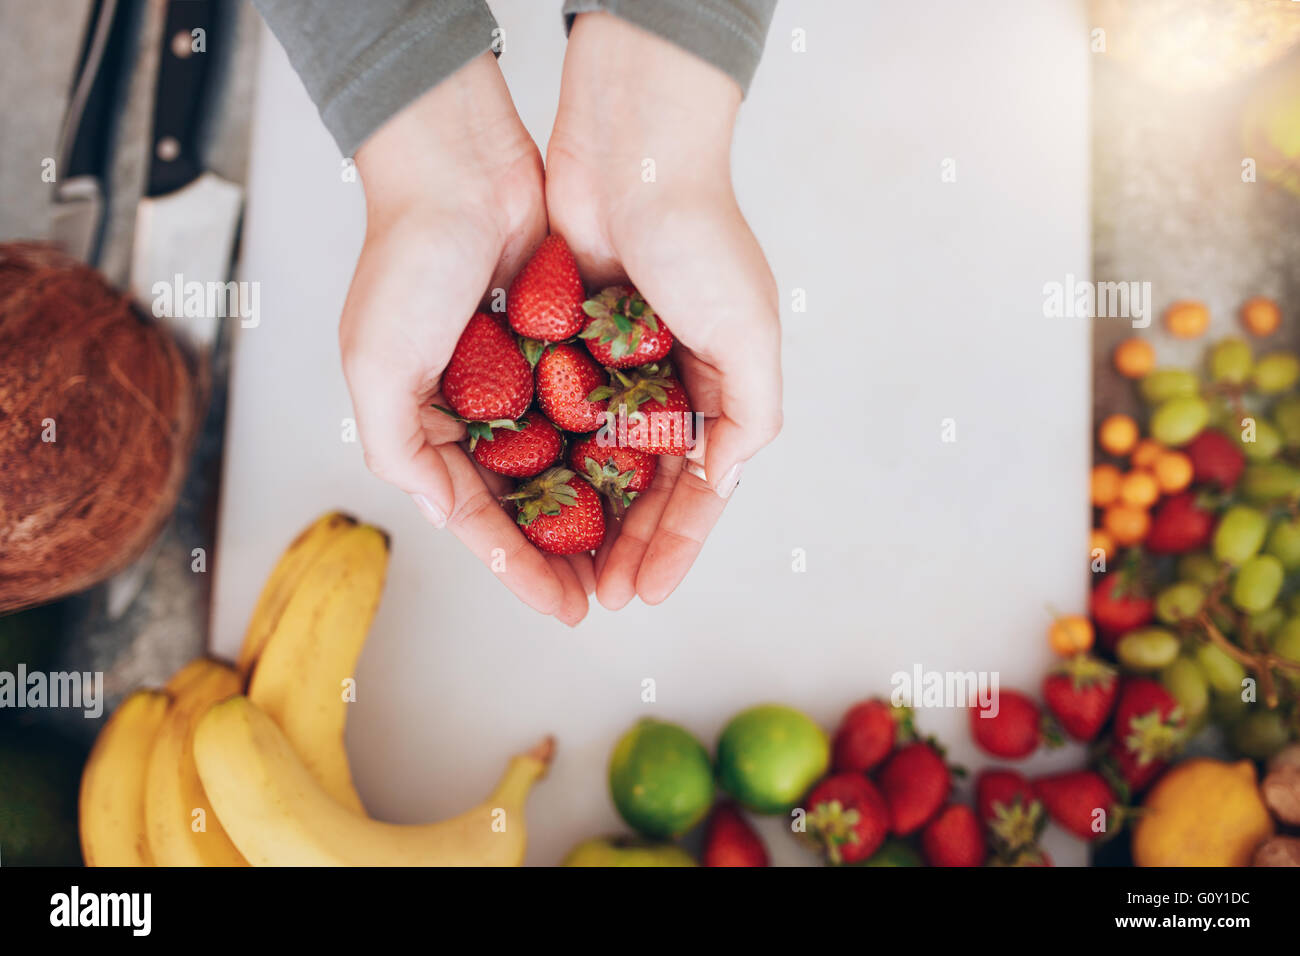 Top View close up shot of a woman's hands holding fresh strawberries sur votre carte avec des fruits. Femme Photo Stock